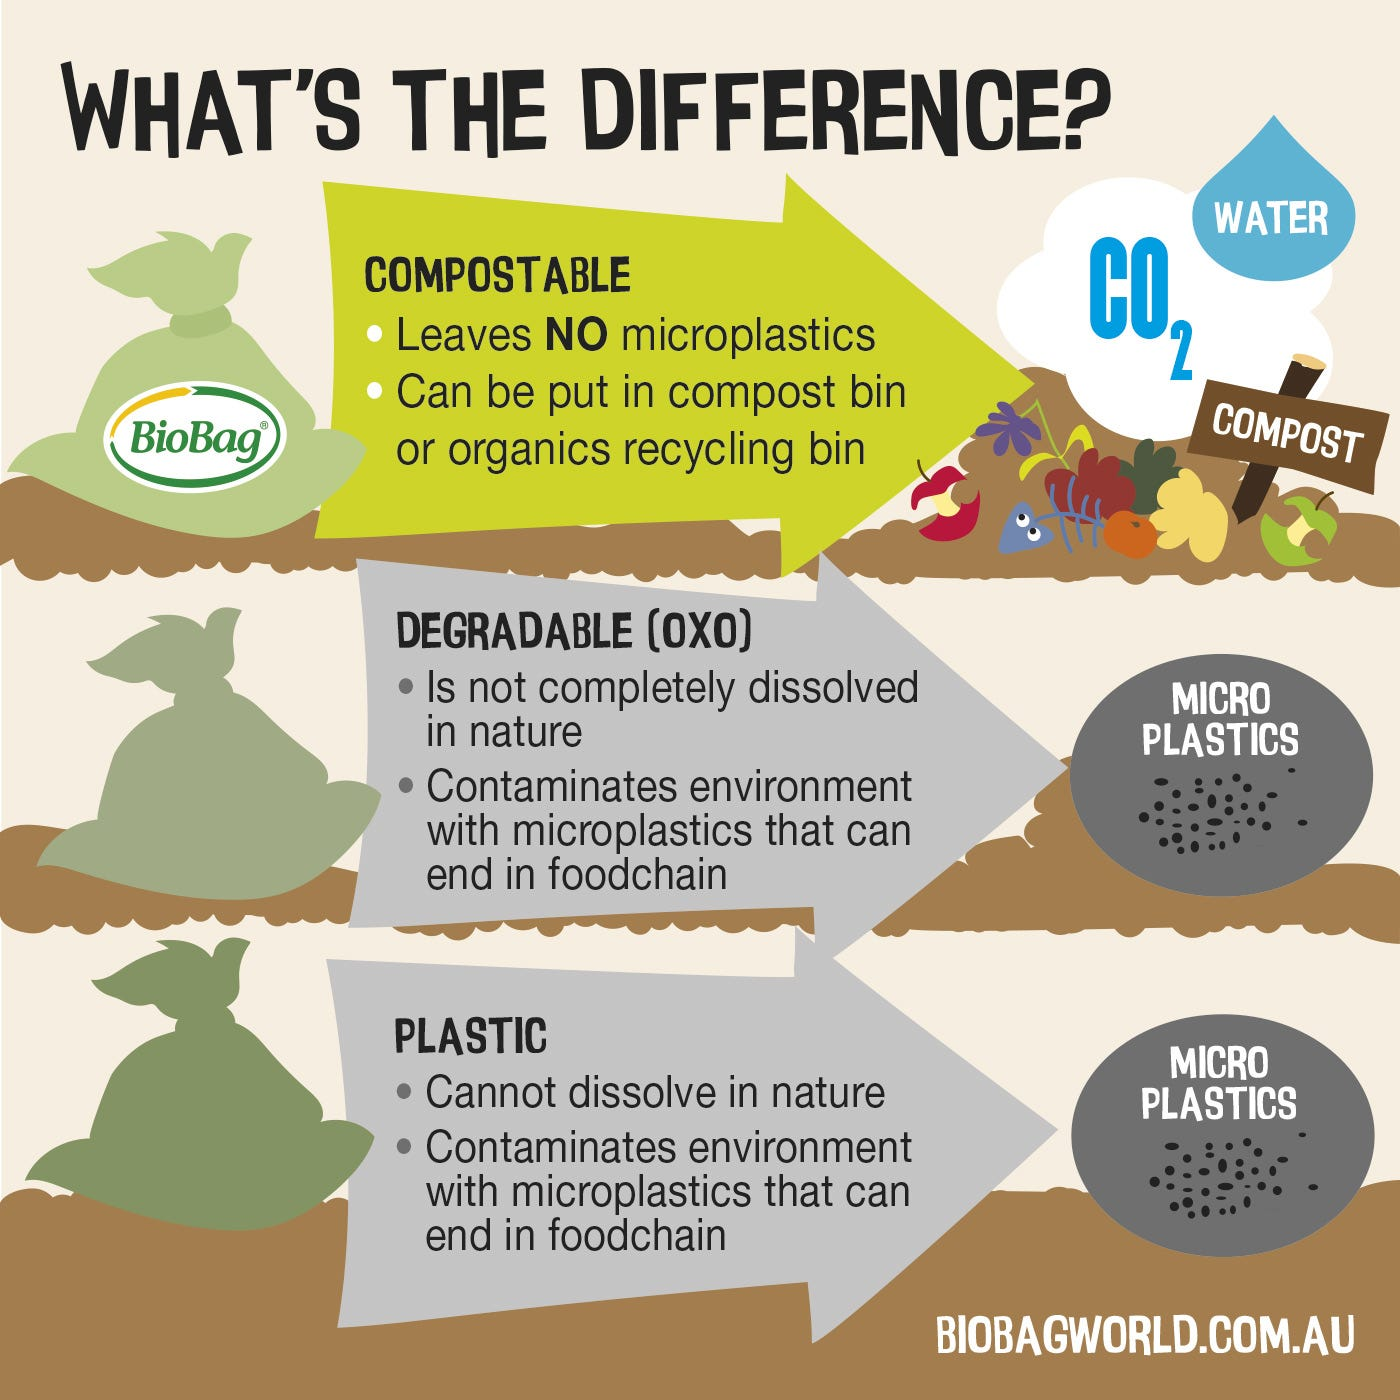 What's The Difference Between Biodegradable And Compostable?